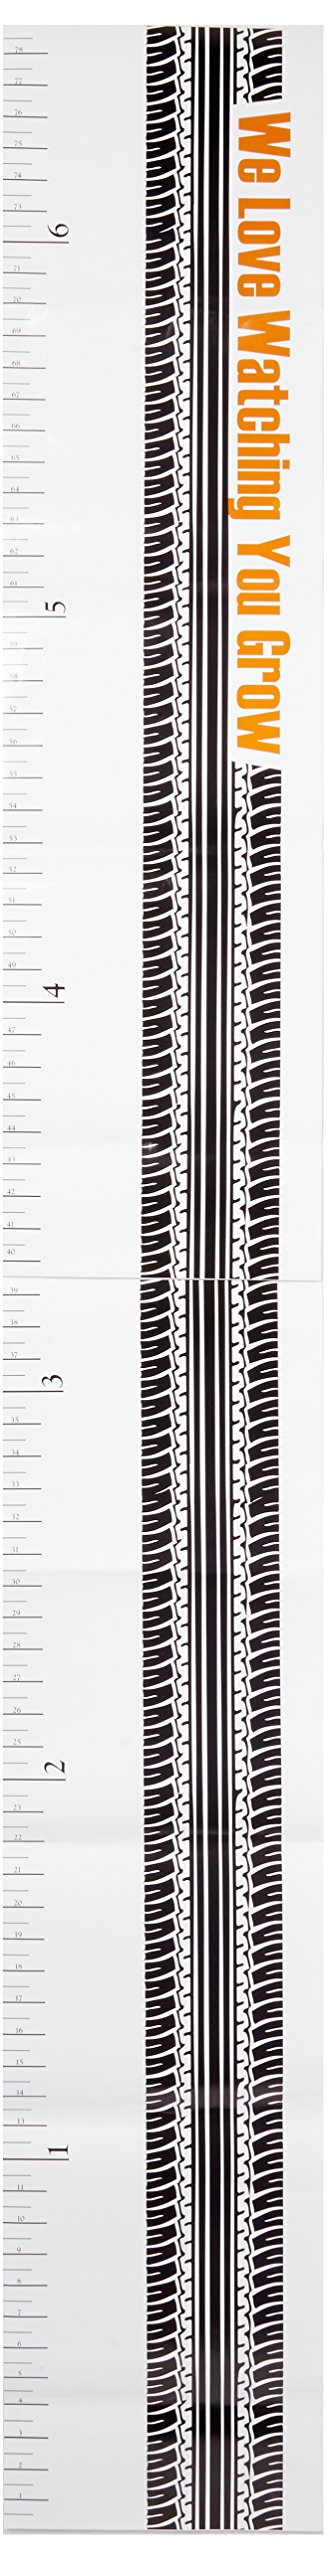 One Grace Place Teyo's Tires Growth Chart Decal, Black, White, Grey, Orange